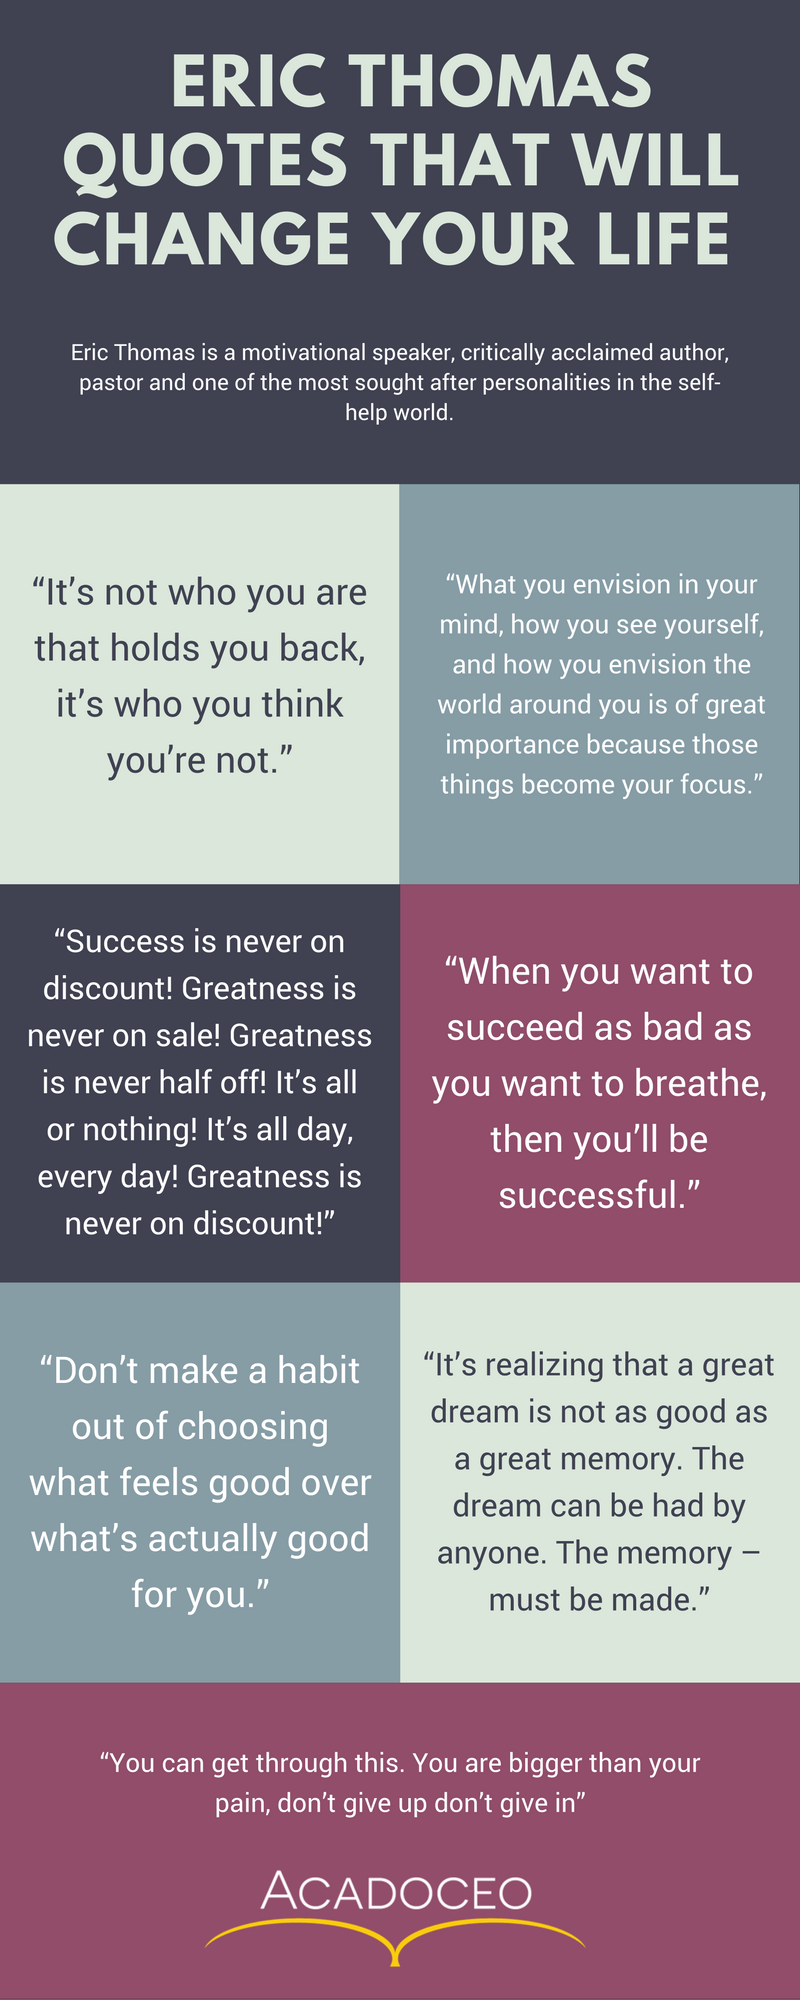 ERIC THOMAS QUOTES THAT WILL CHANGE YOUR LIFE